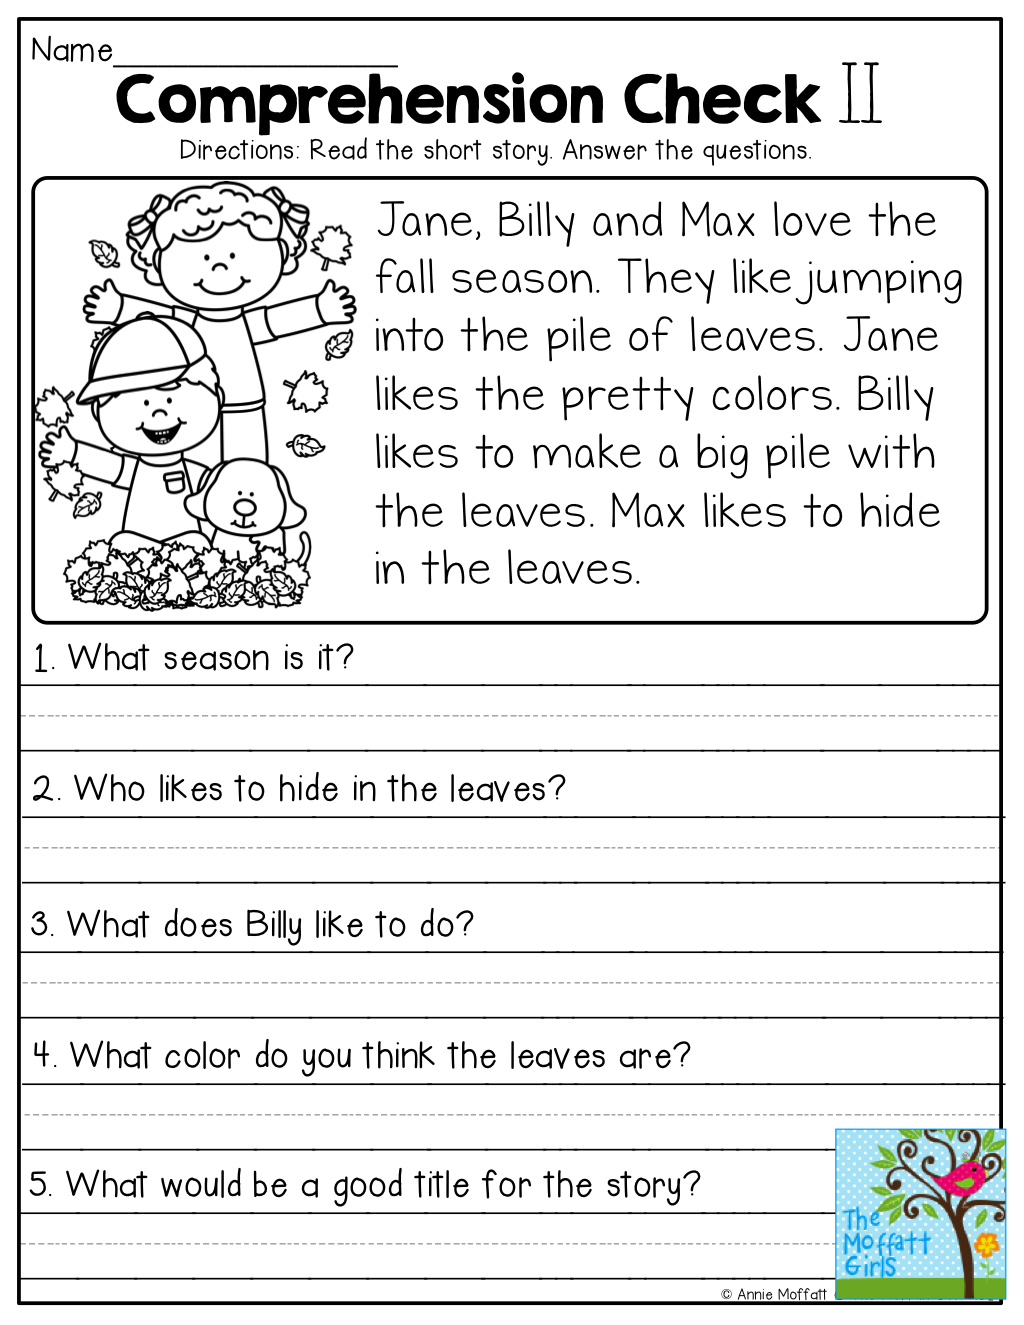 Free Worksheet Free Comprehension Worksheets For Grade 2 17 best images about listening comprehension on pinterest student centered resources and therapy